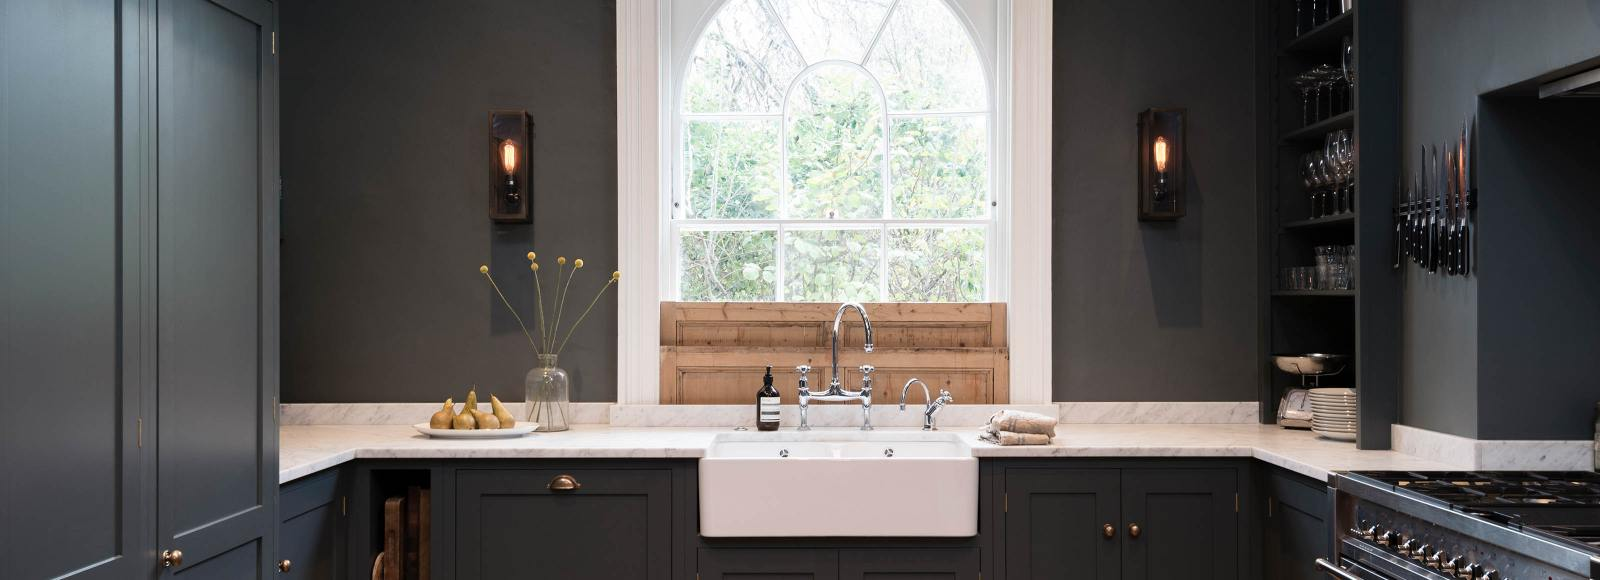 Bespoke Kitchens, Bathrooms and Interiors by deVOL photo 9